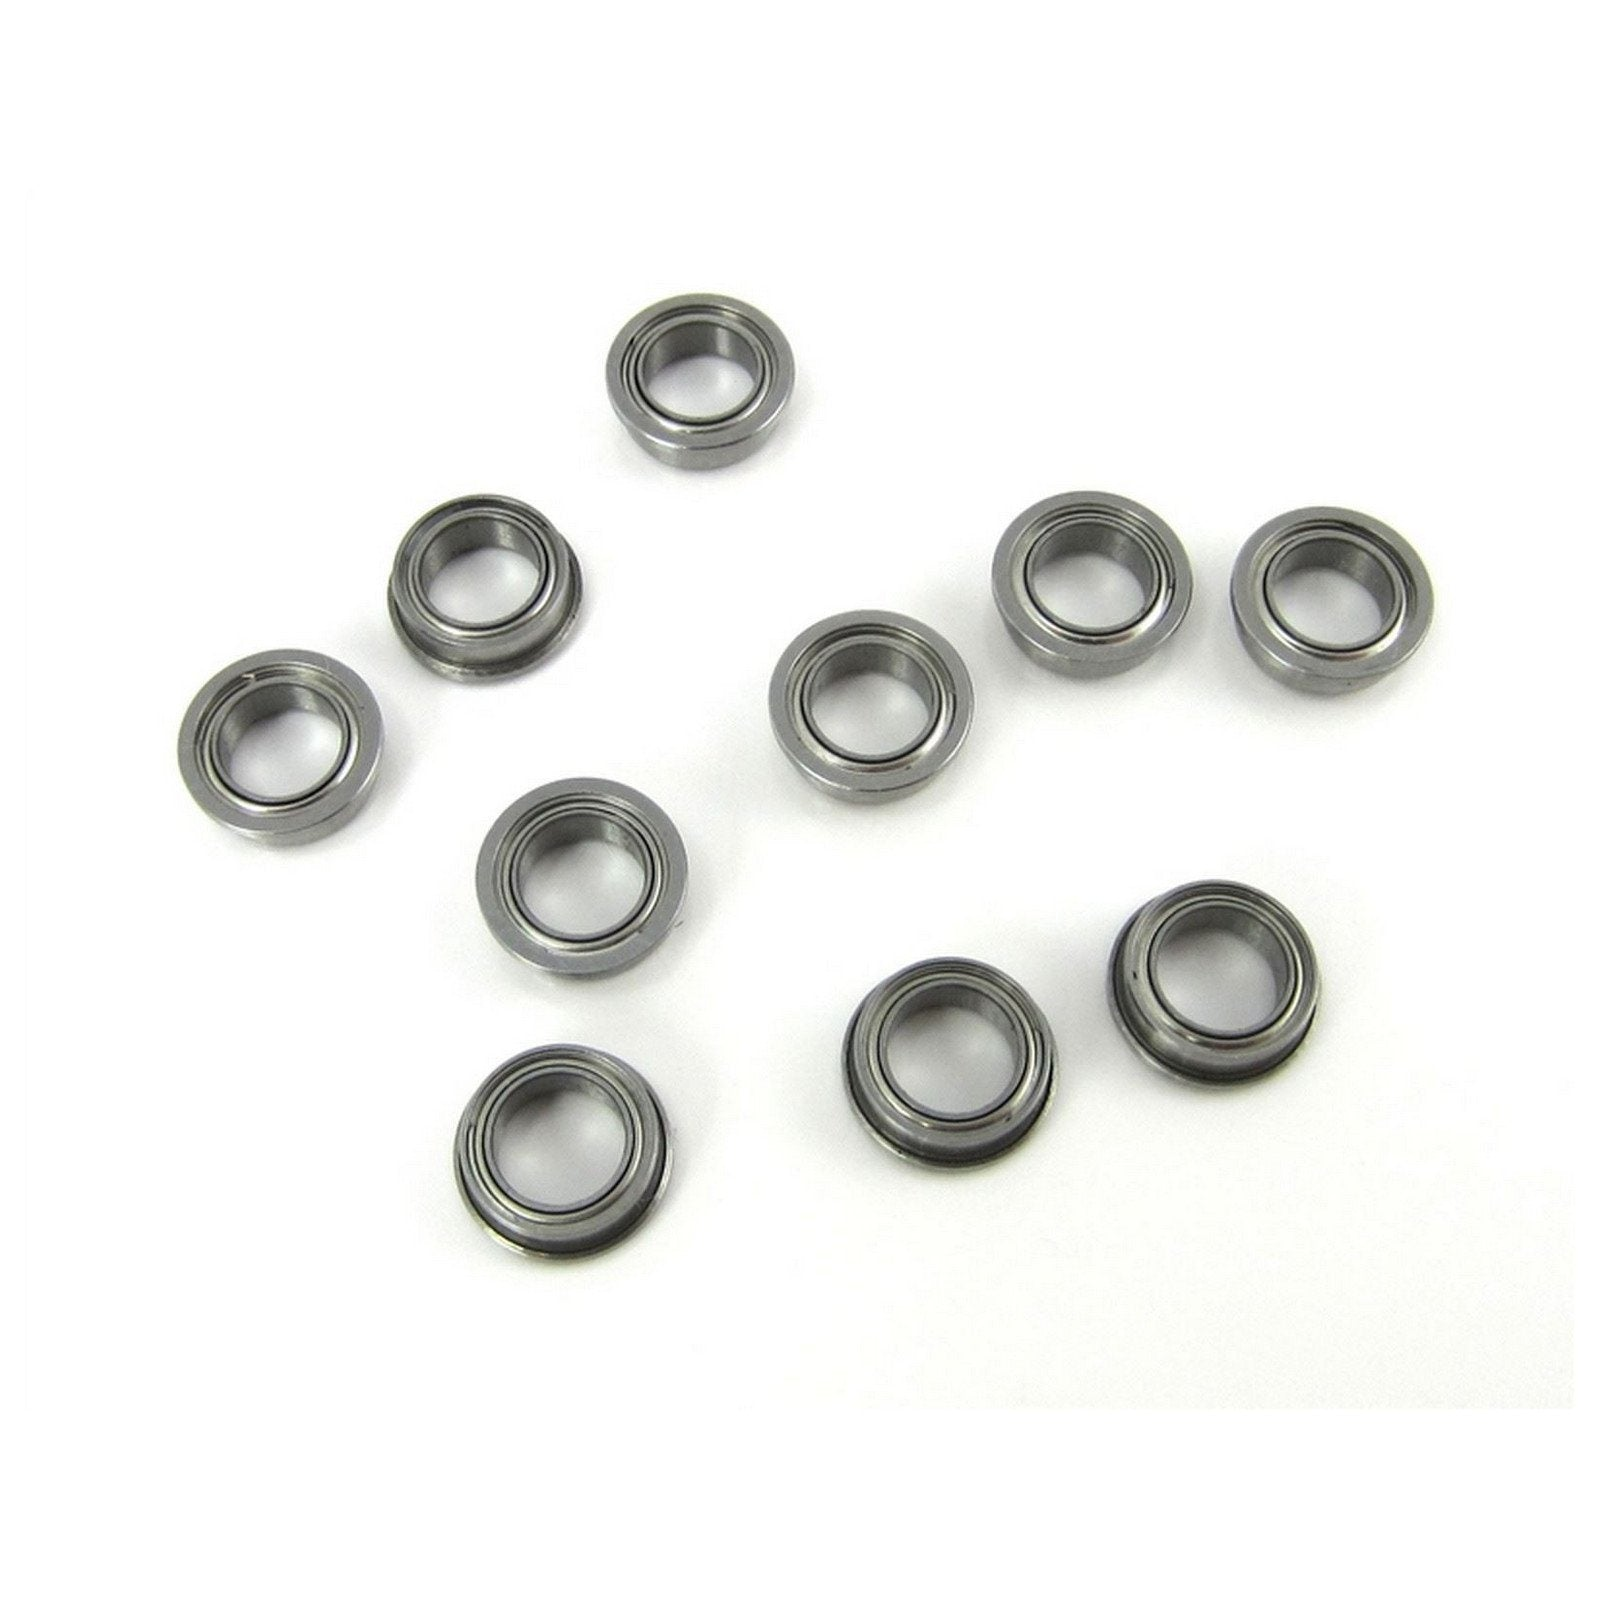 TRB RC 1/4x3/8x1/8 Flanged Precision Ceramic Ball Bearings Metal Shields (10) - trb-rc-bearings